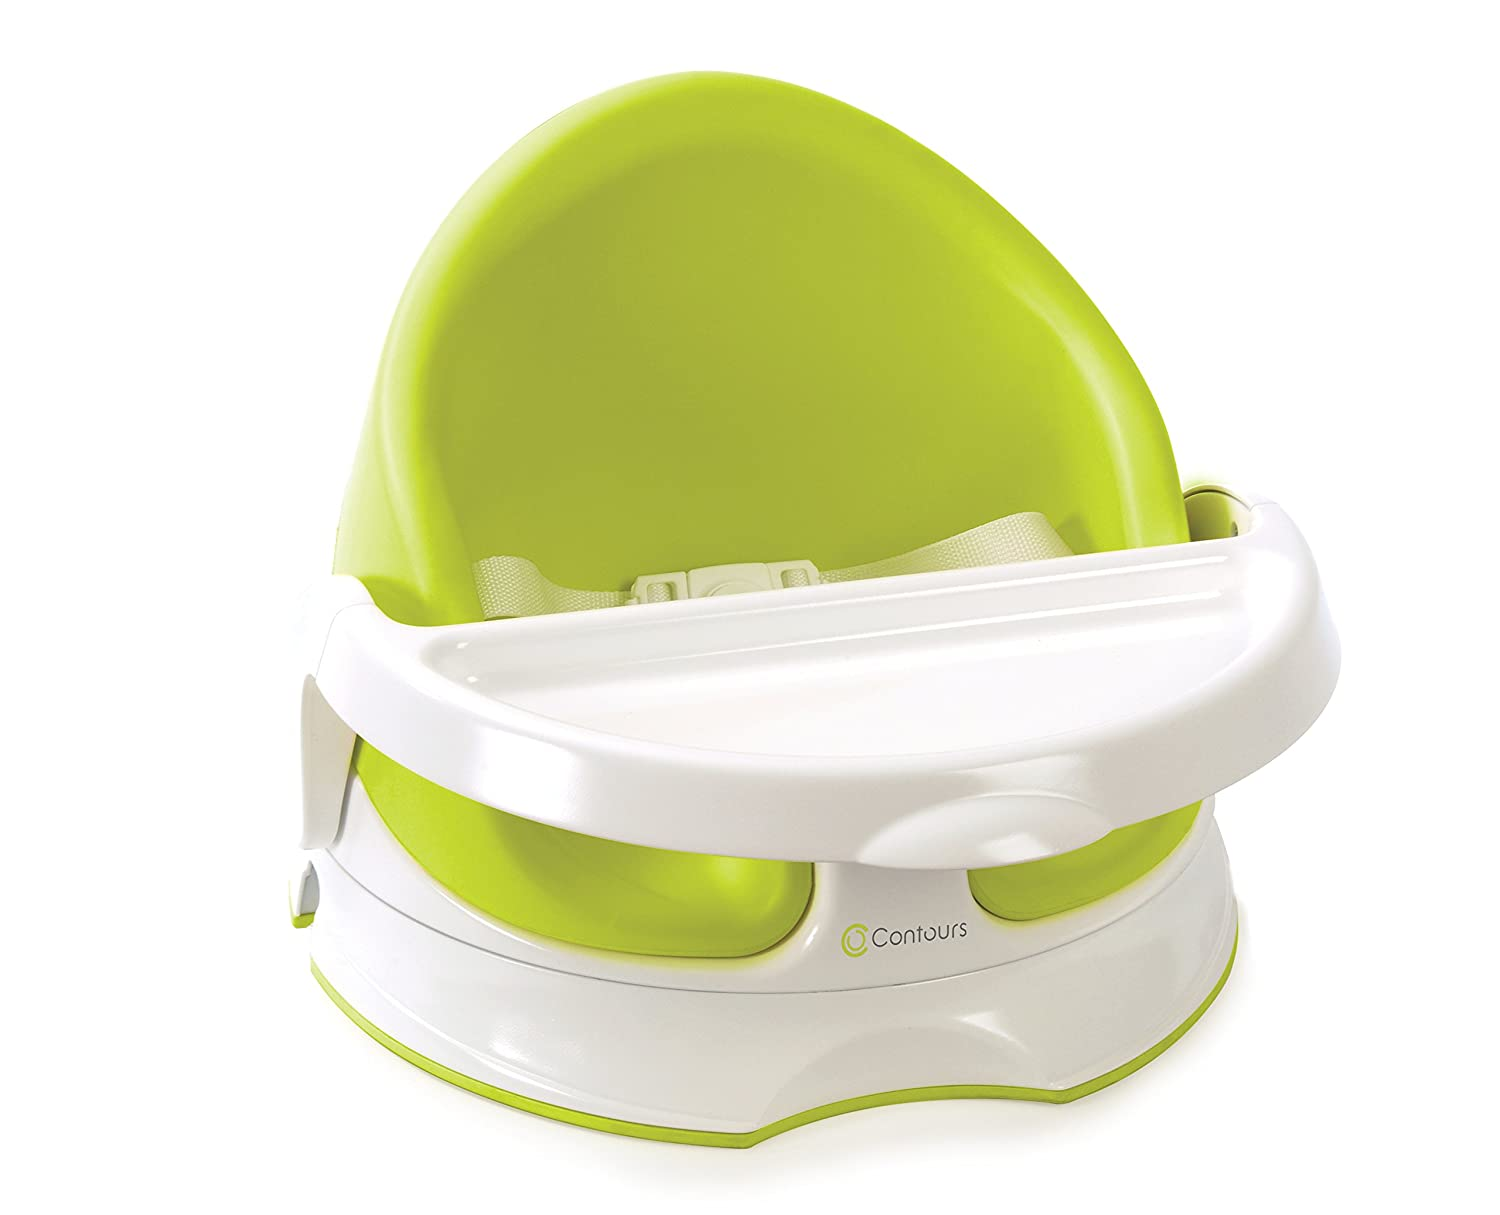 Contours Twist Grow with Me 3-in-1 Floor, Booster and Feeding Seat -180° Swivel, Removable Foam Seat, Wipe Clean Feeding Tray and 3-Point Harness System, Aqua ZN001-AQA2